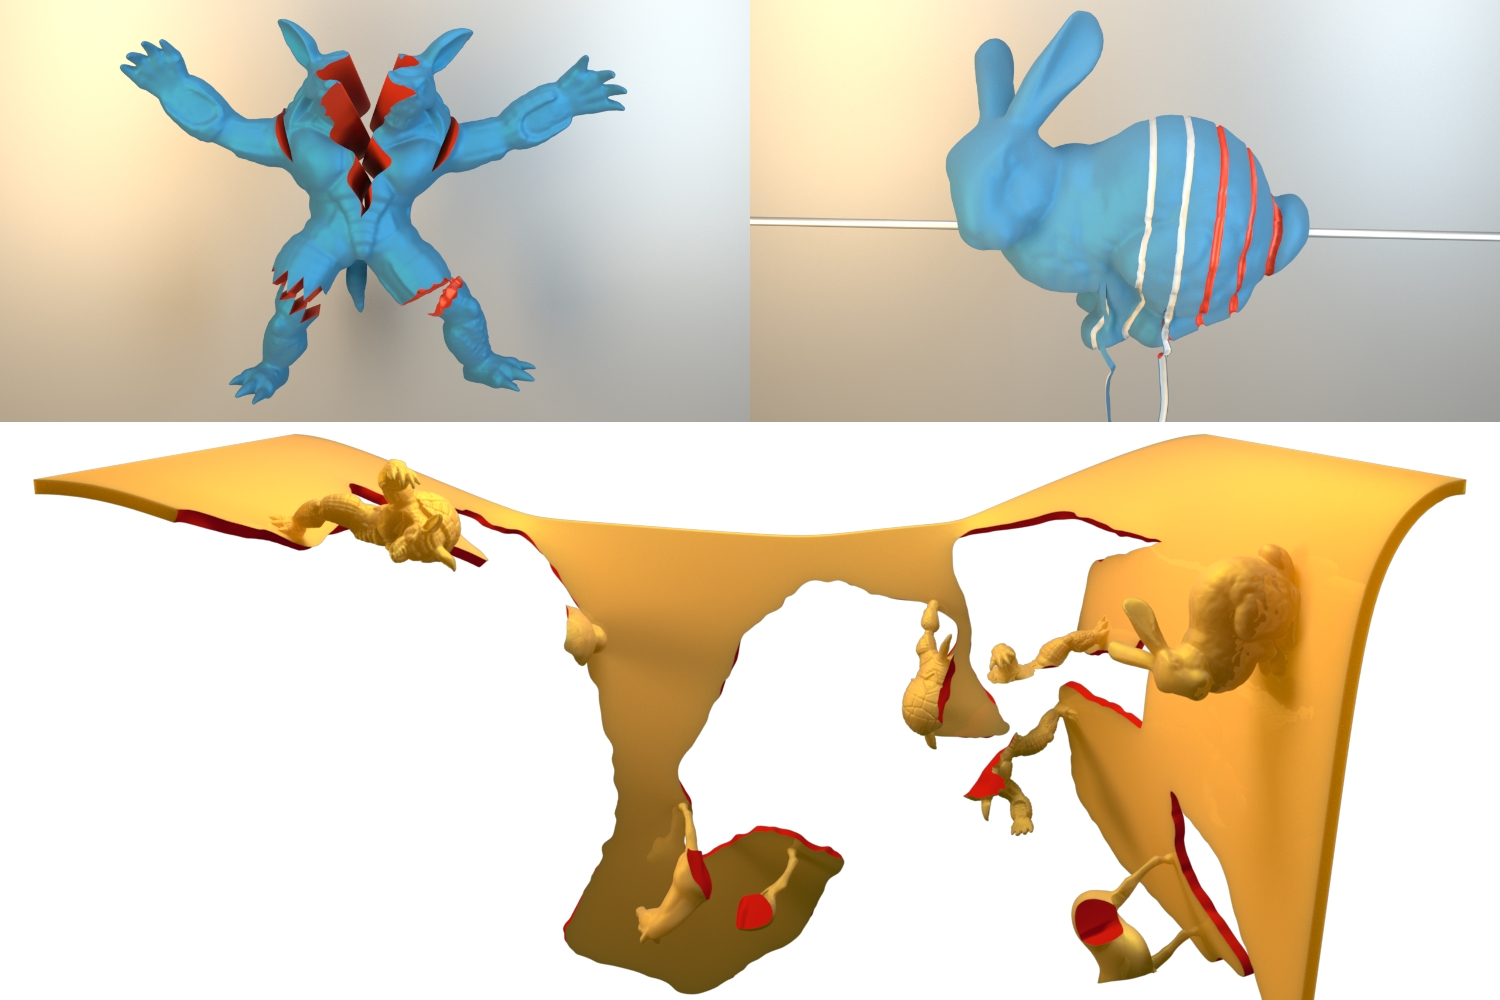 animation research paper Animation essayswe can understand animation from the greek word animare which means to give life to something without animation is a series of still pictures that are shown in rapid succession creates the illusion of movement because of persistence of vision, this means the image stays.